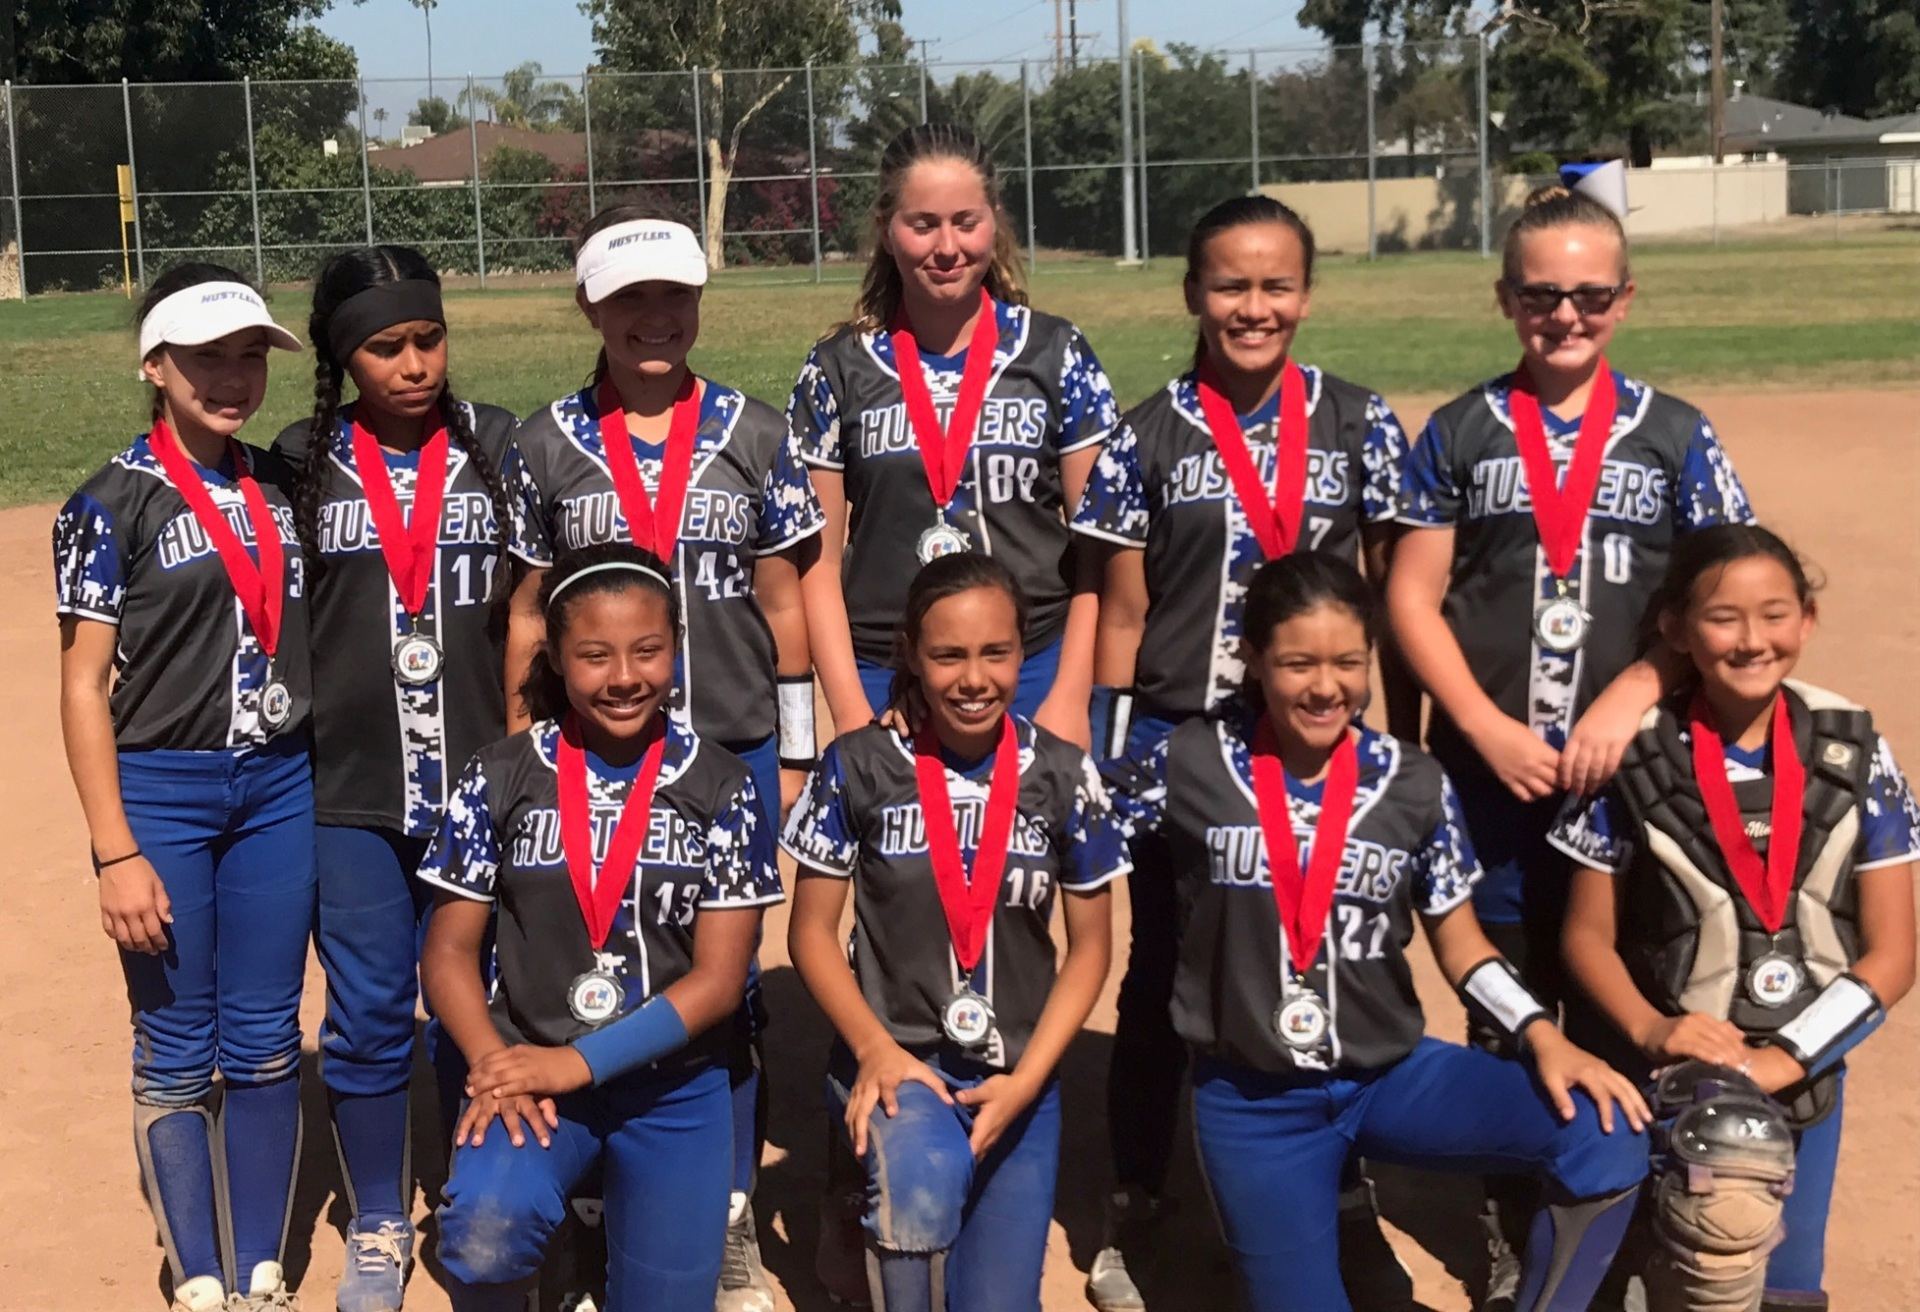 2nd Place - OC Hustlers 12u